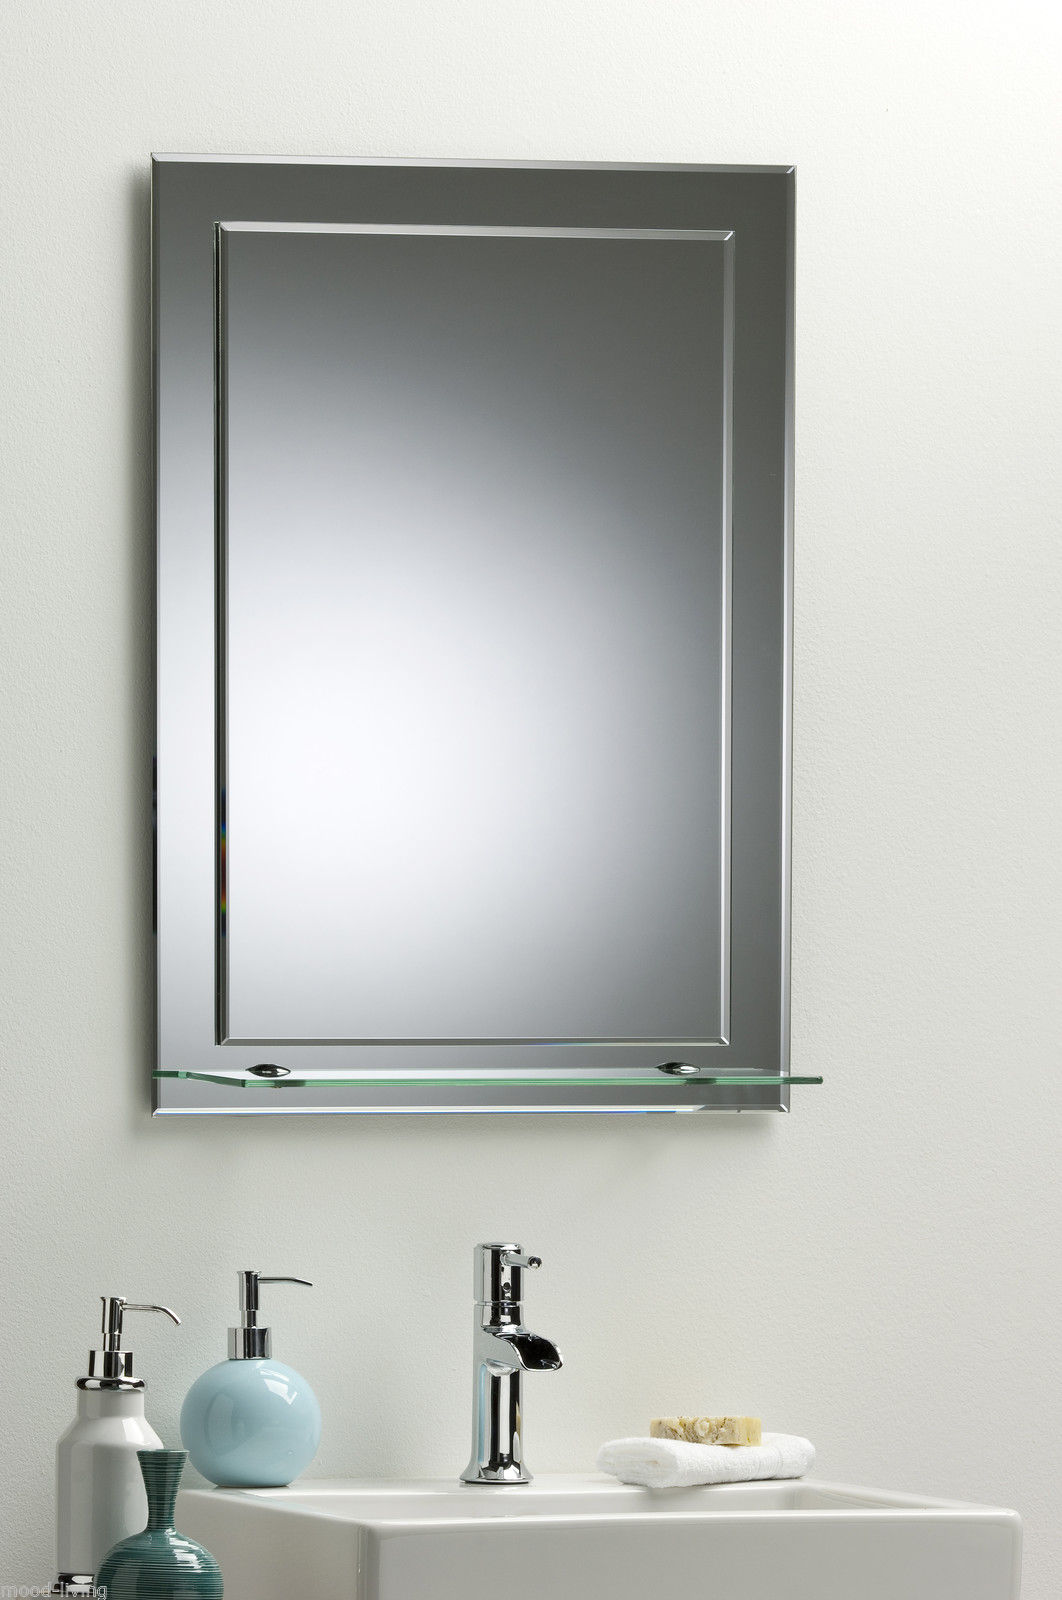 BATHROOM MIRROR ON MIRROR Elegant Rectangular WITH SHELF Wall Mounted Plain